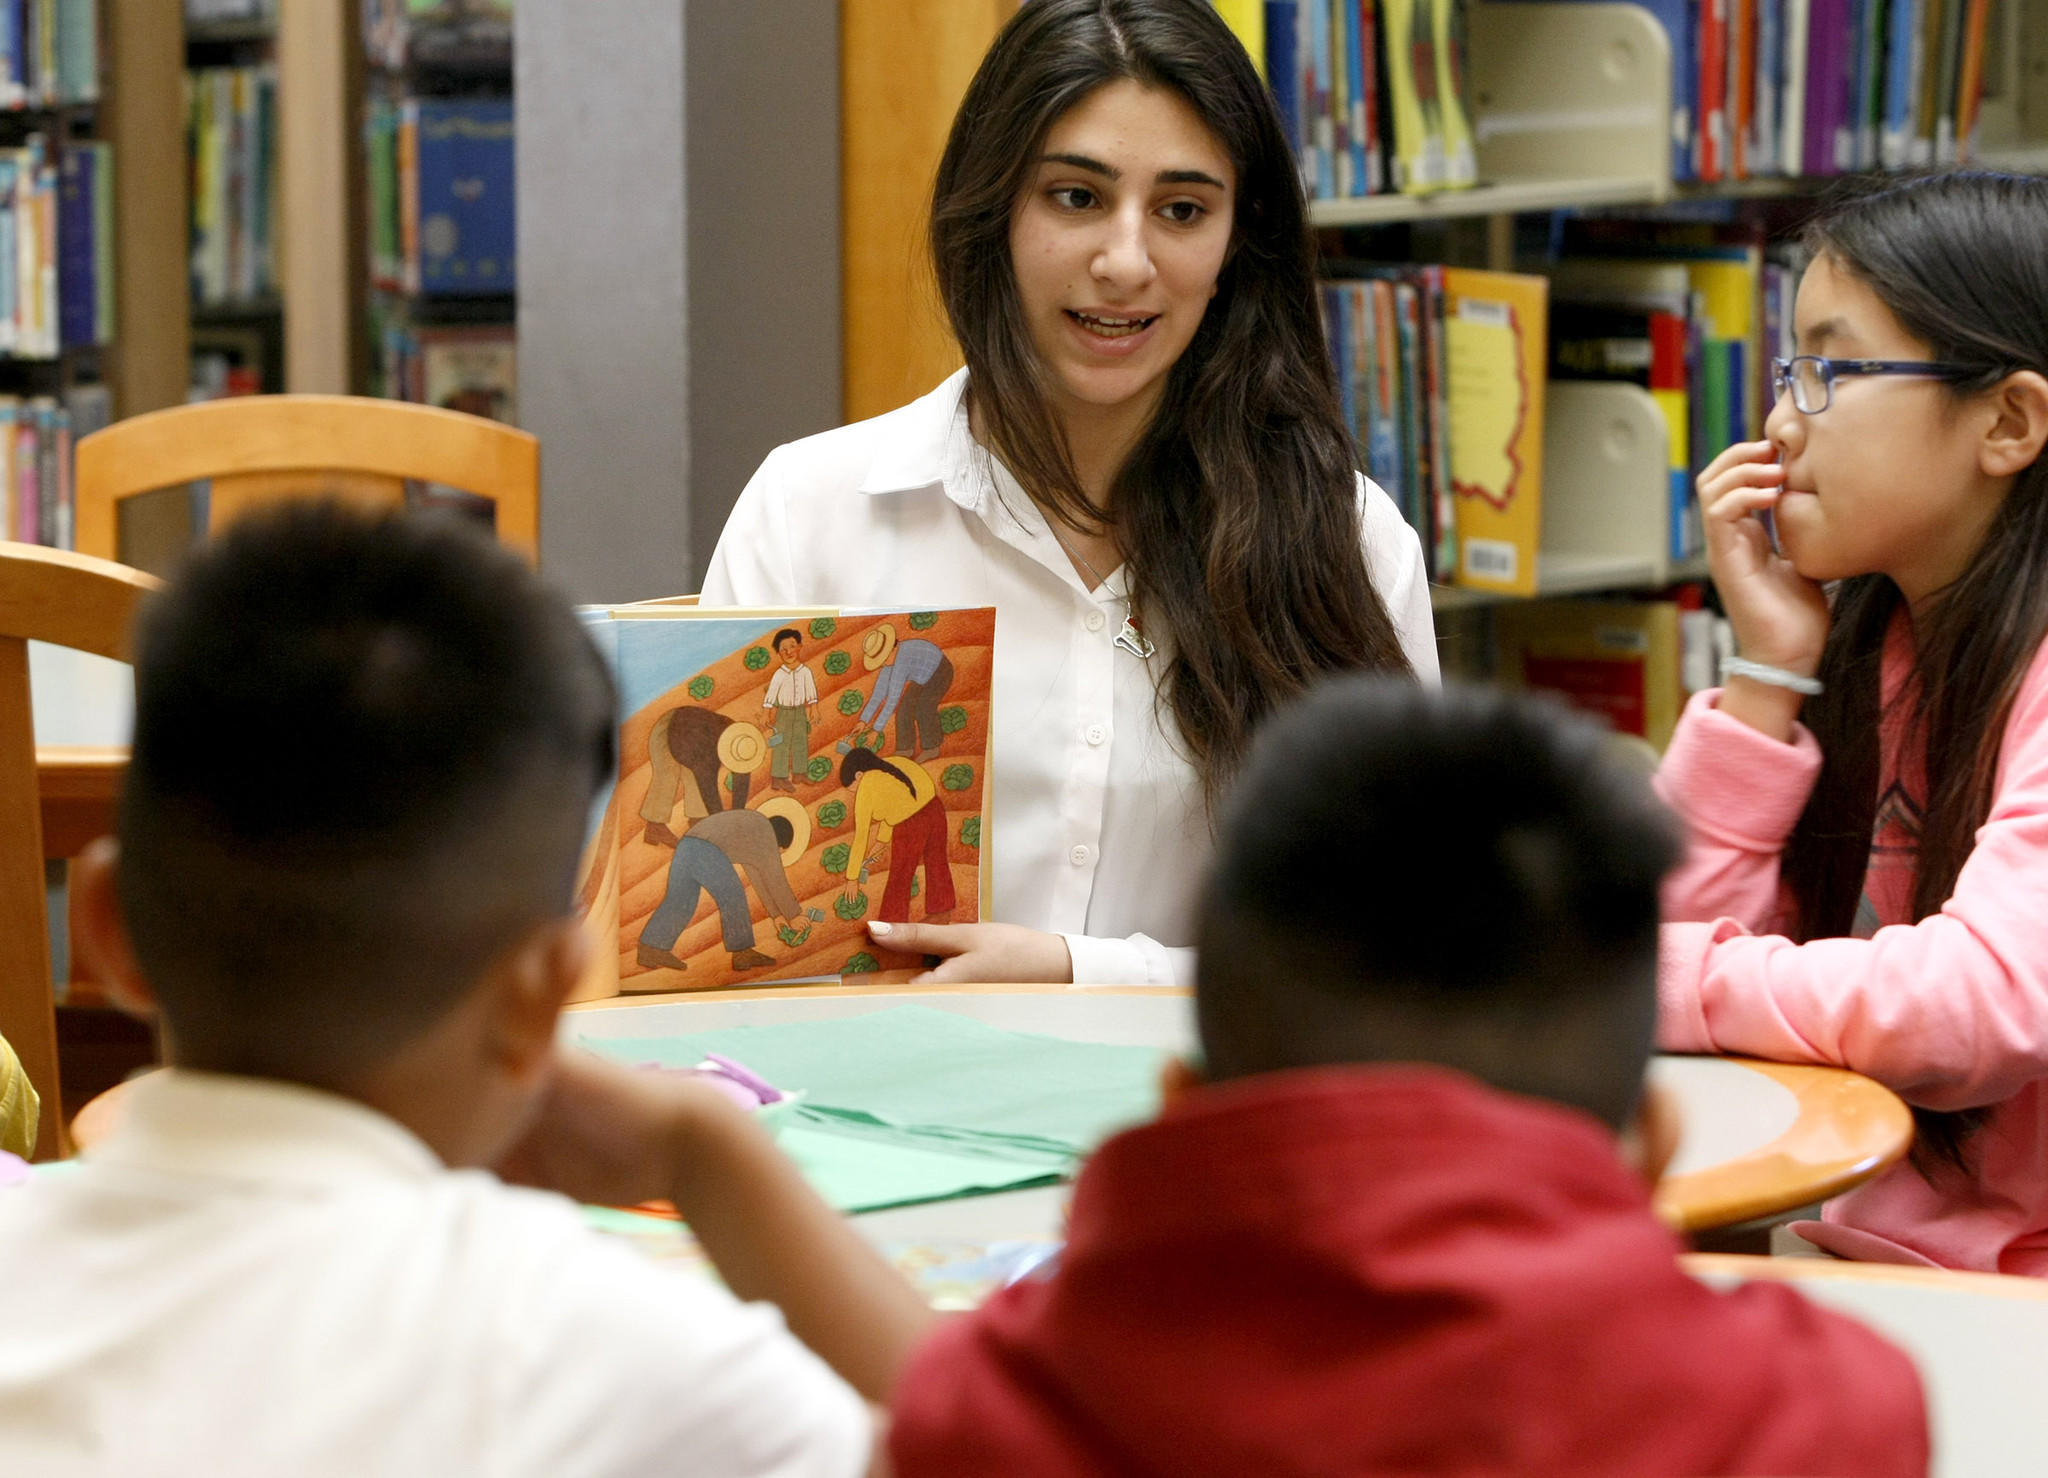 Clark Magnet High School senior Noor Atif read a book about Cesar Chavez to school children at Pacific Park Library in Glendale on Thursday, March 13, 2014. Atif is a voluteer at the library and teaching about Chavez is part of her senior project.